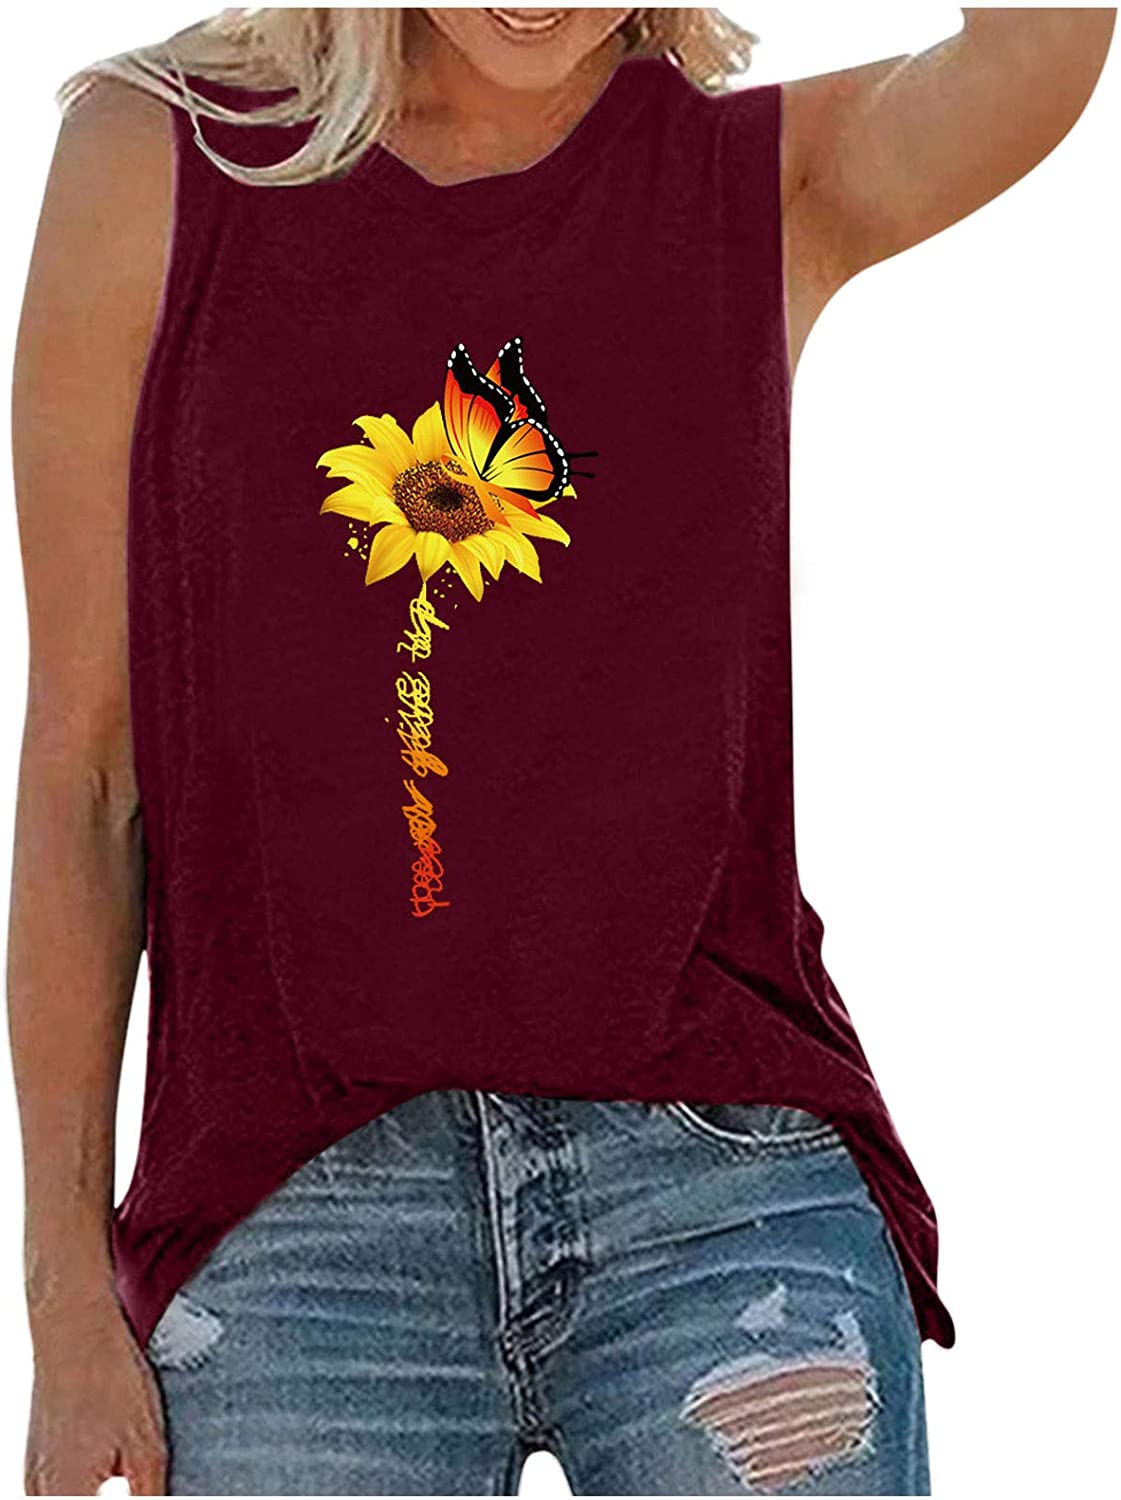 Tank Tops for Women,Women Tank Tops, Womens Sexy Letter Printed Shirts Crop Top Sleeveless Blouse Loose Tank